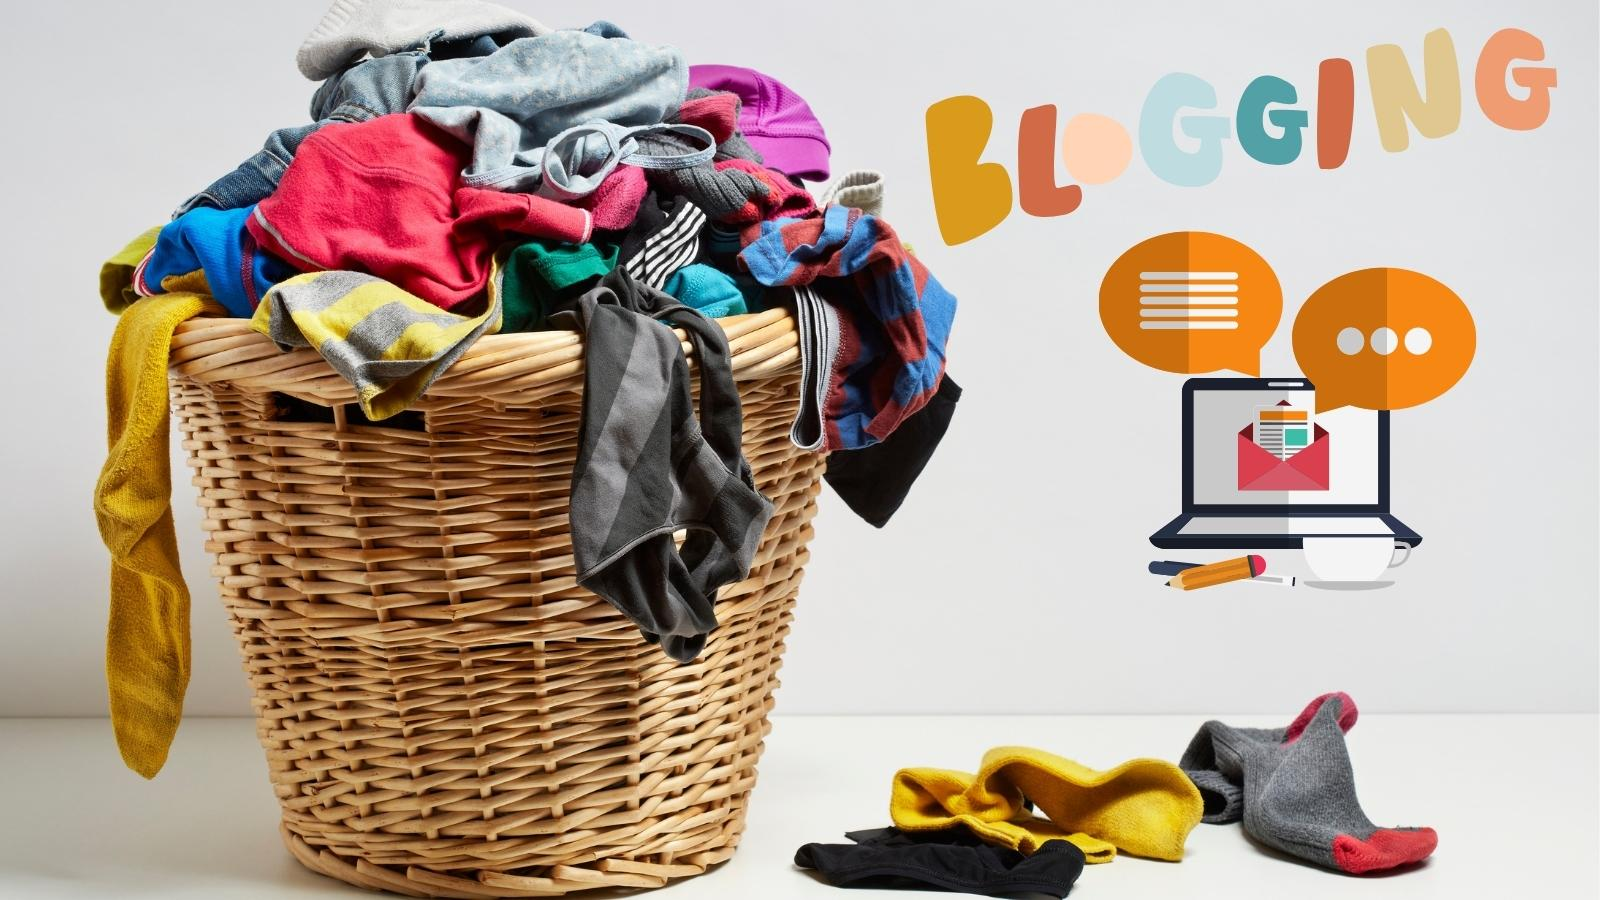 blogging over laundry